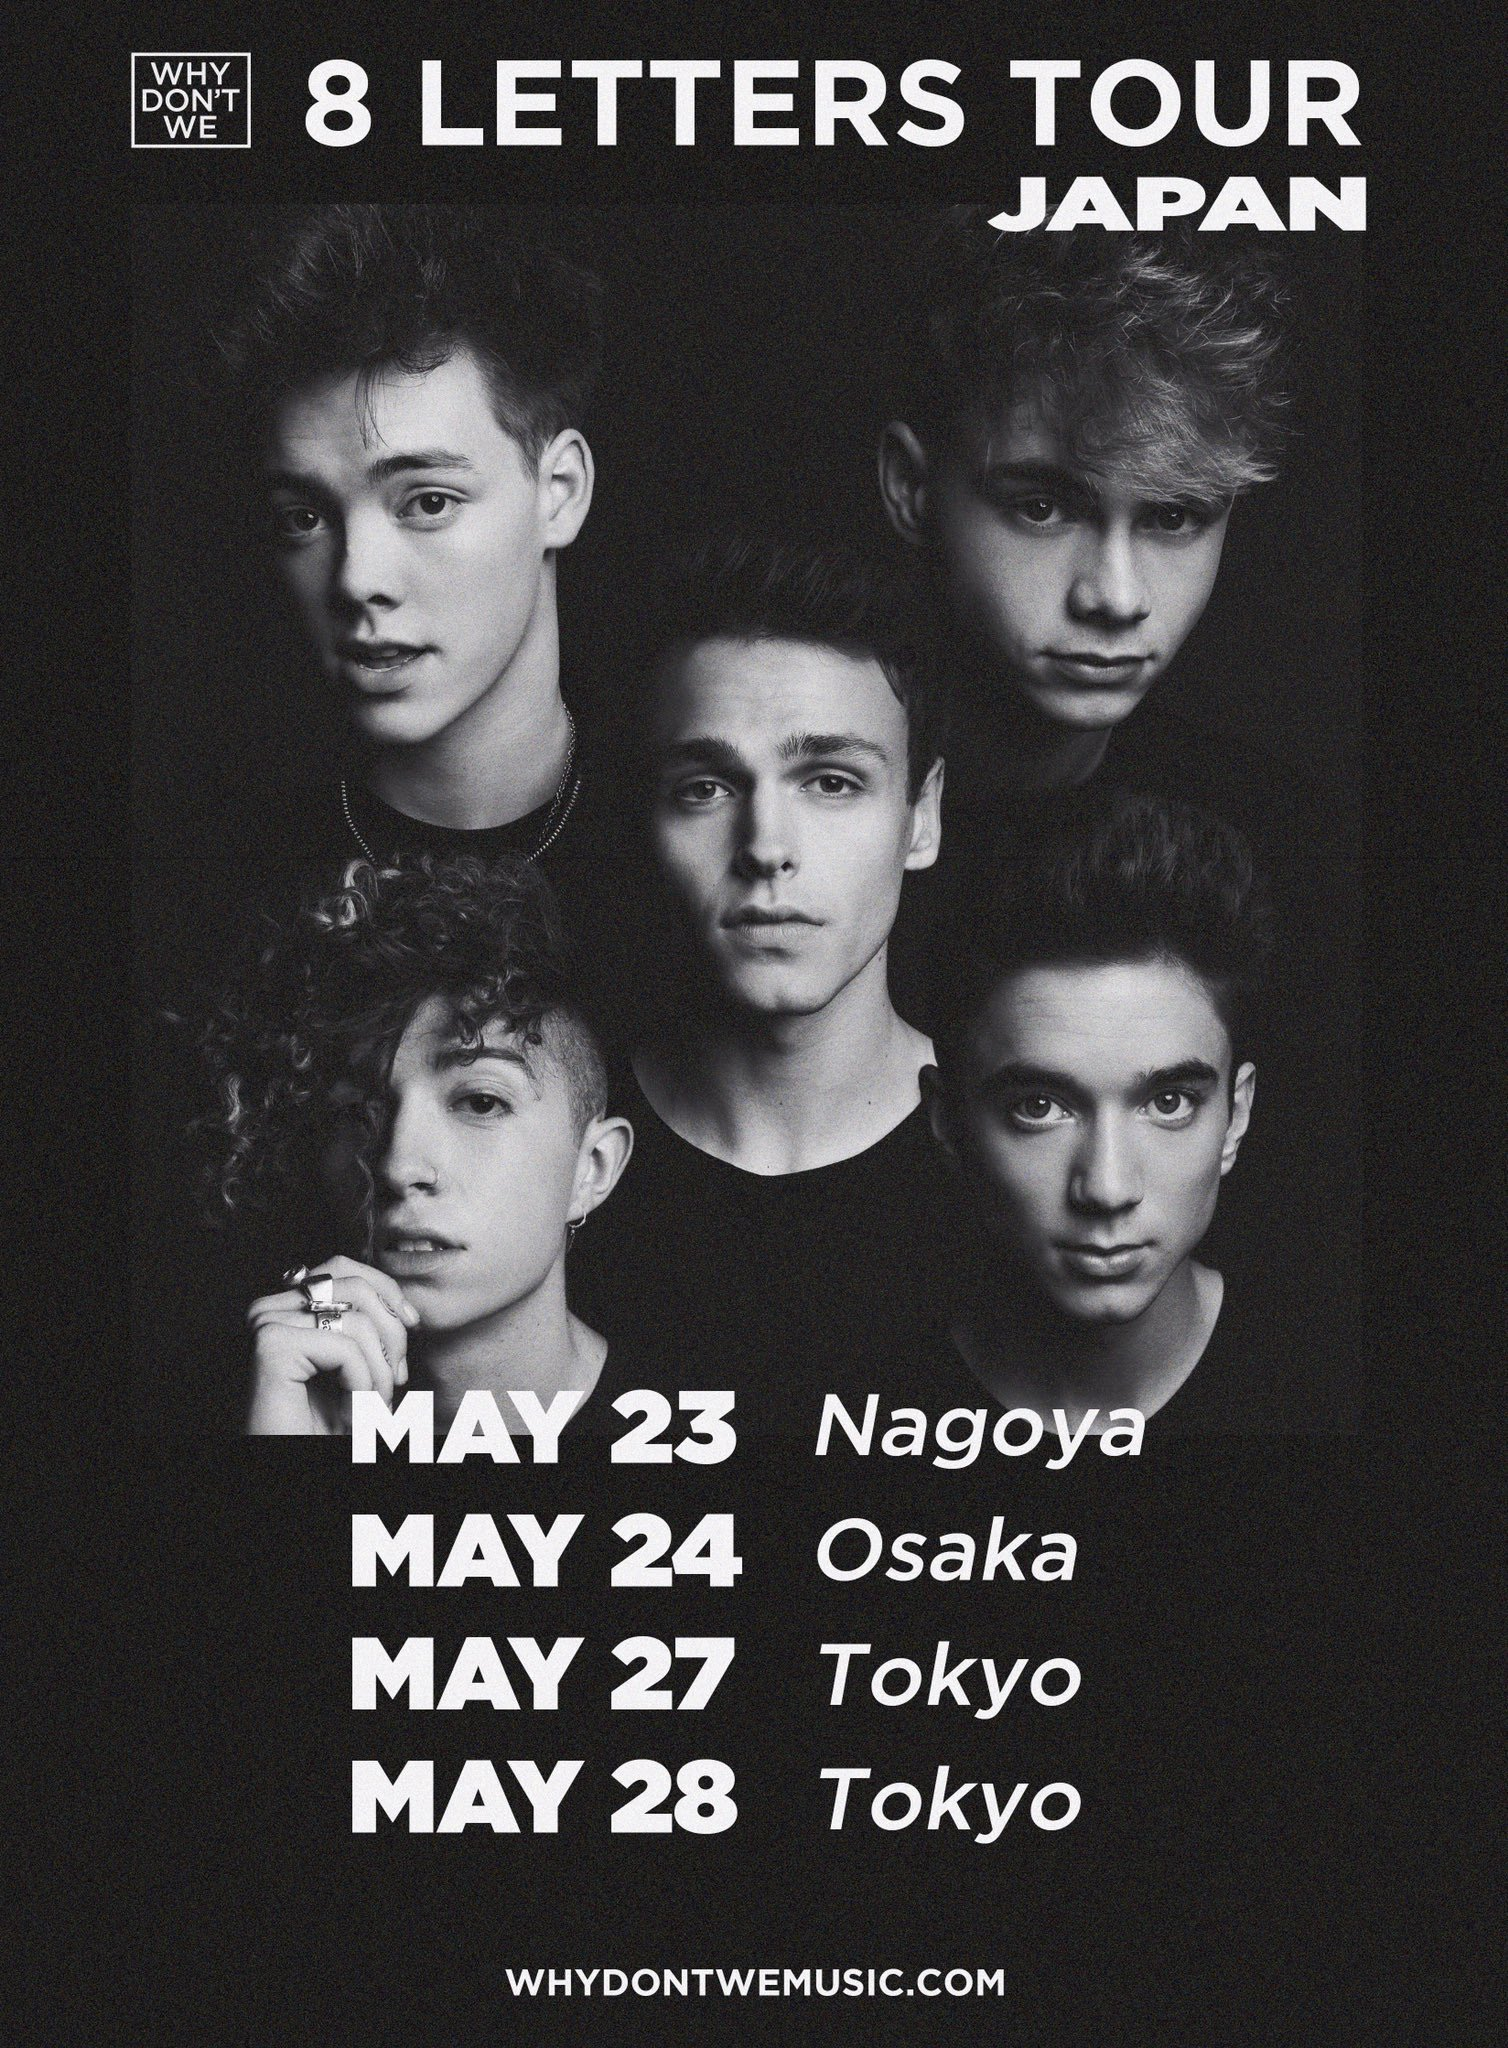 Why Don't We  @ whydontwemusic